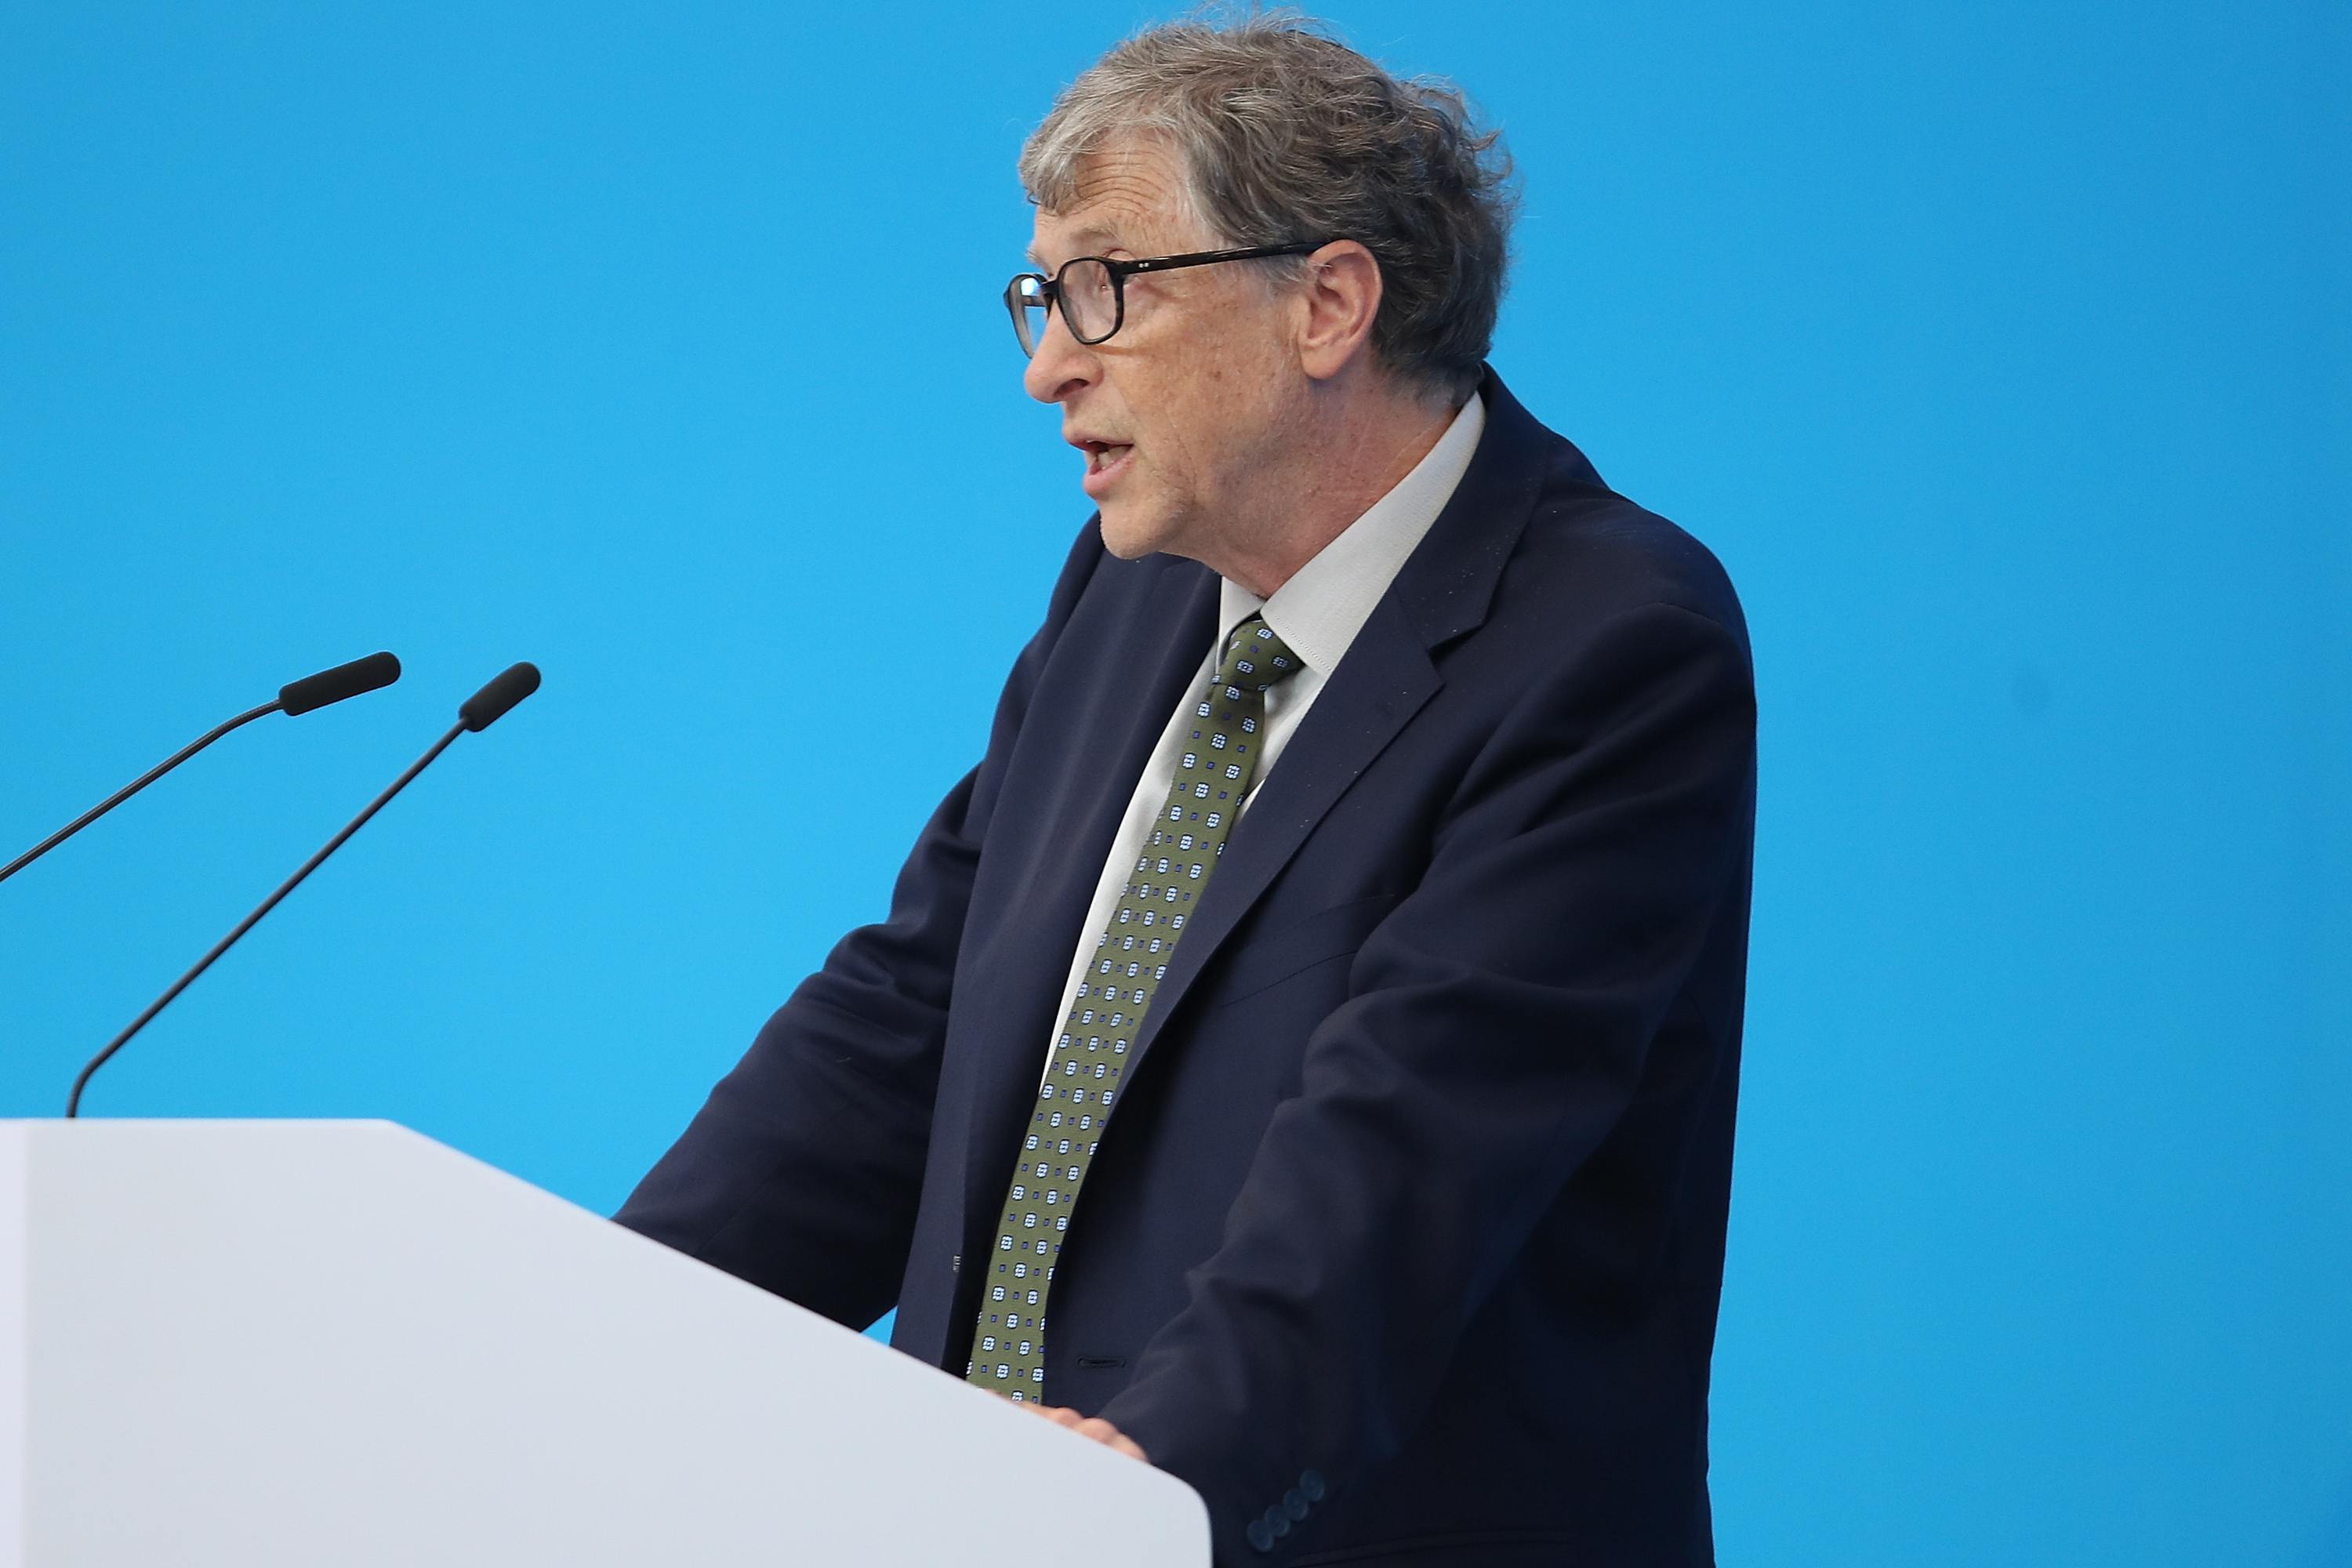 """Bill Gates: AI is like """"nuclear weapons and nuclear energy"""" in danger and promise"""